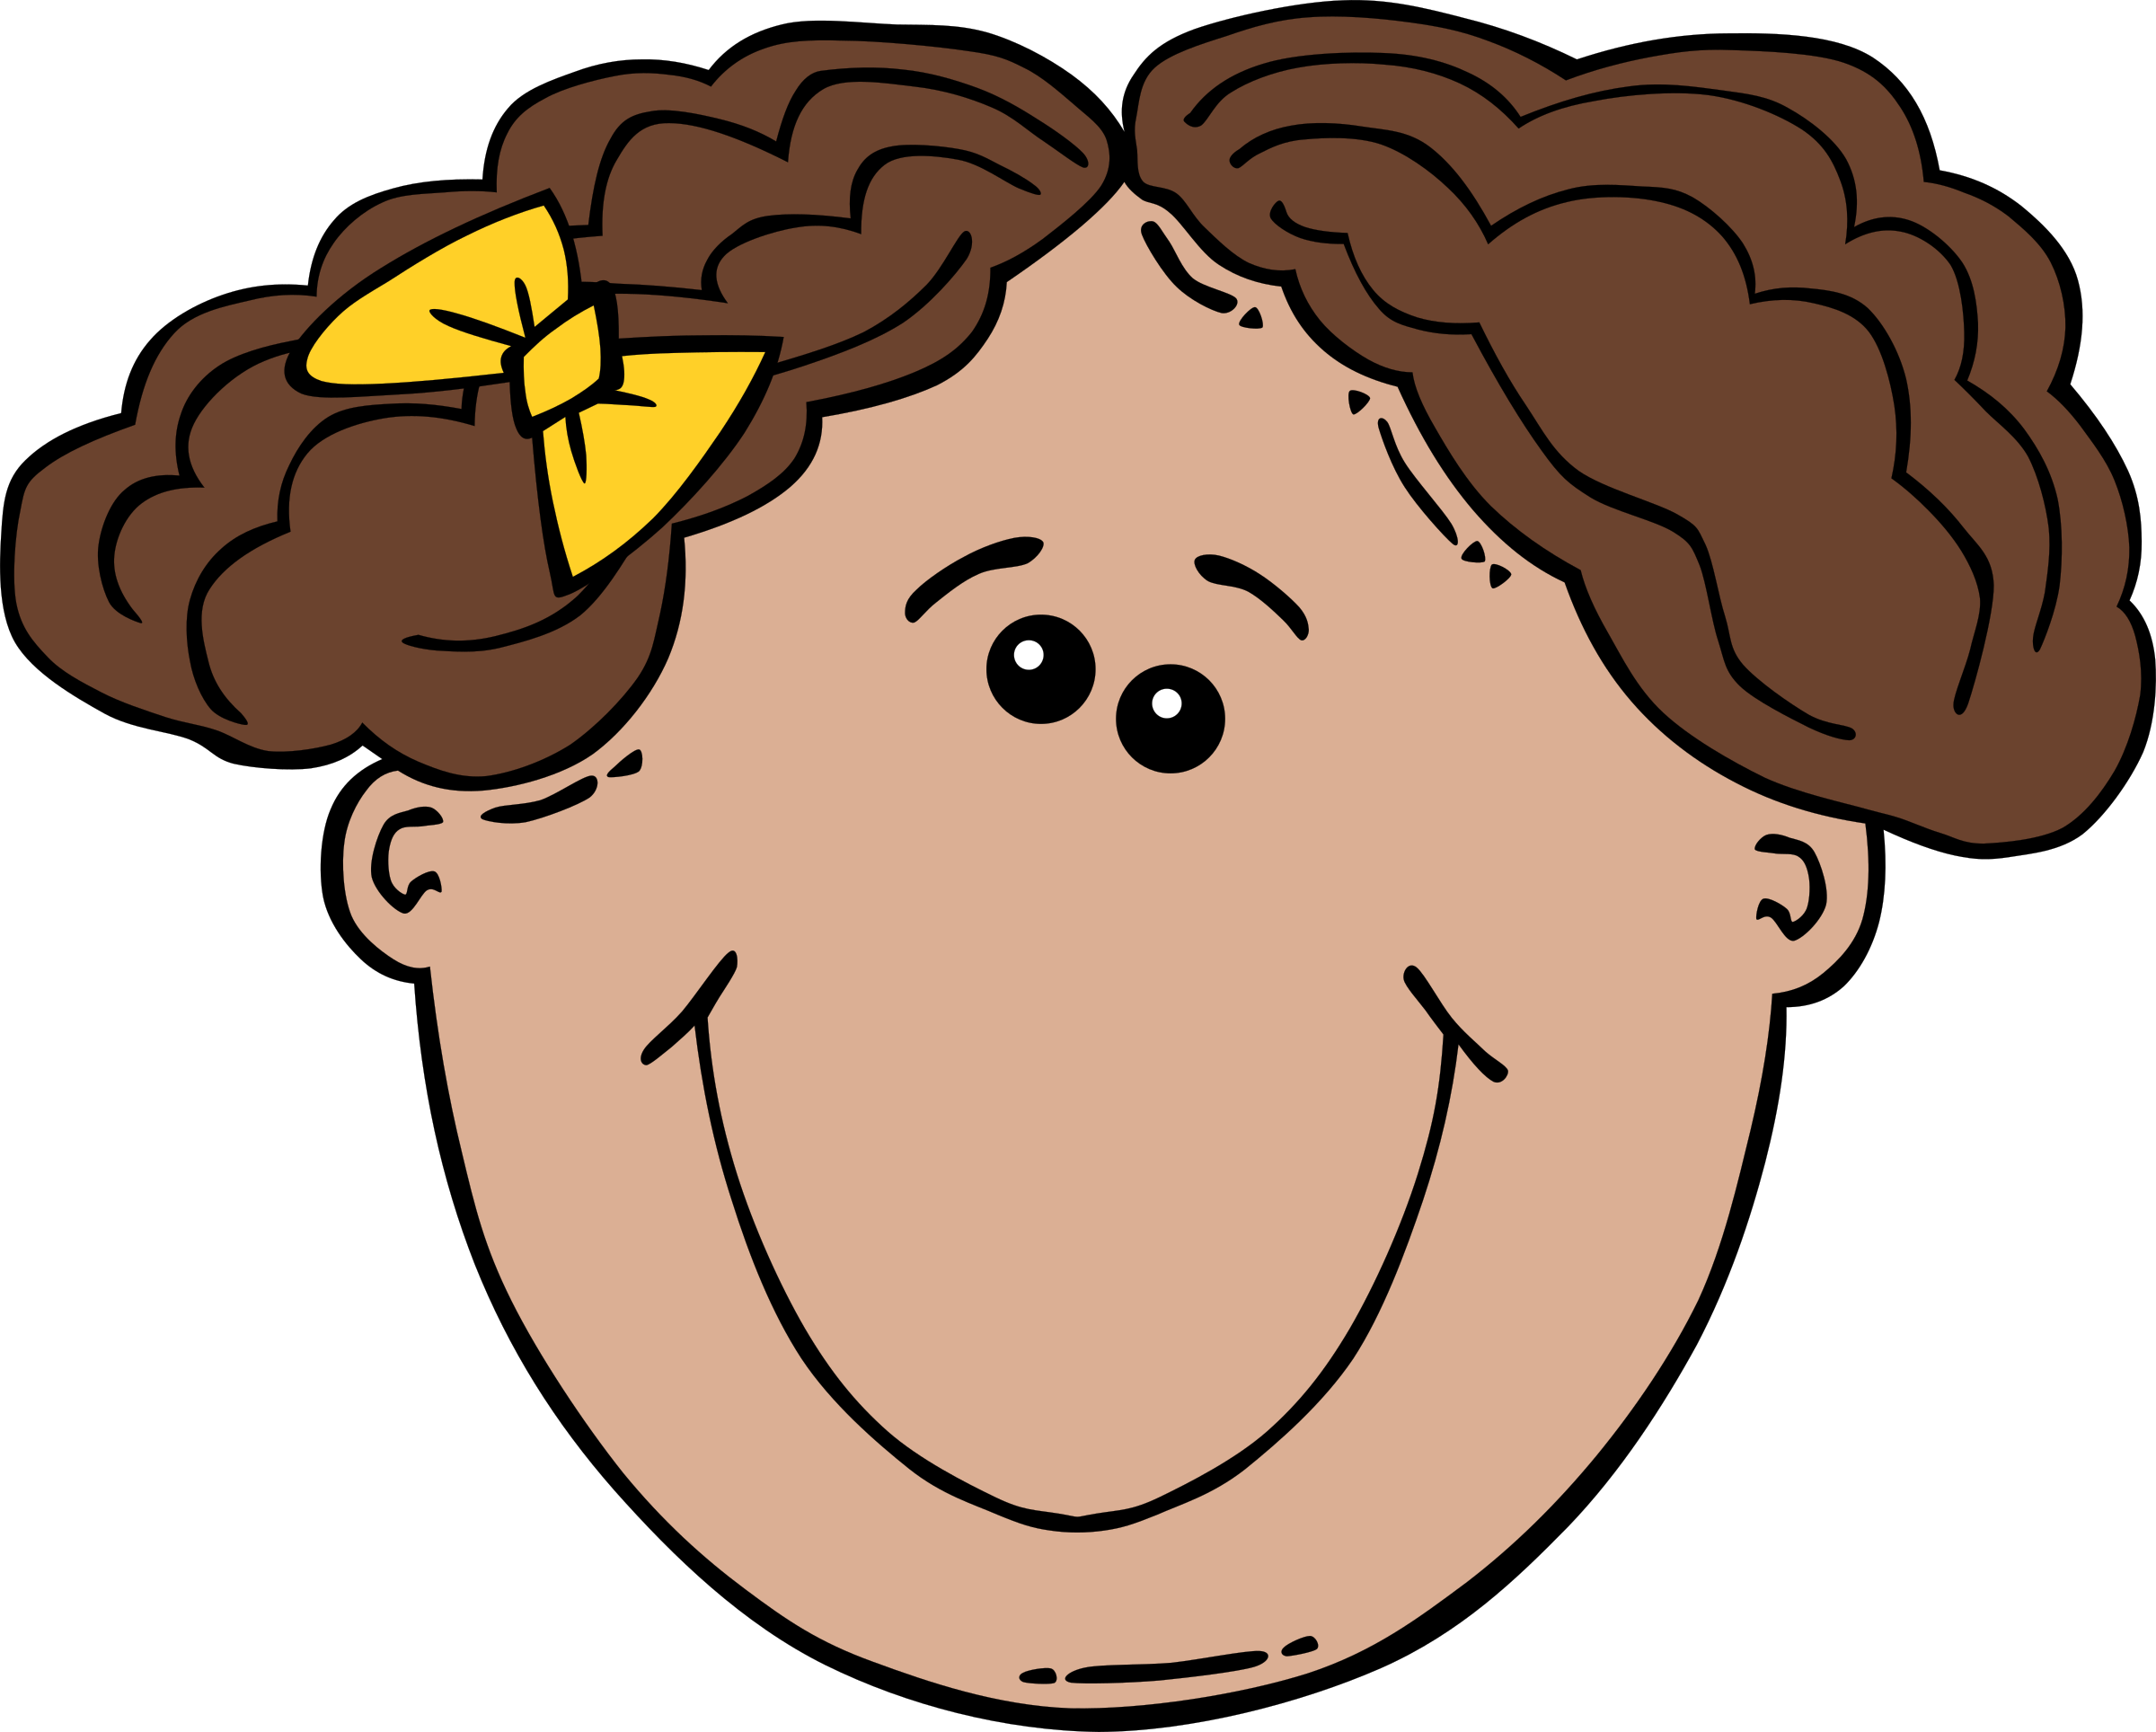 Girls clipart cousin, Girls cousin Transparent FREE for.